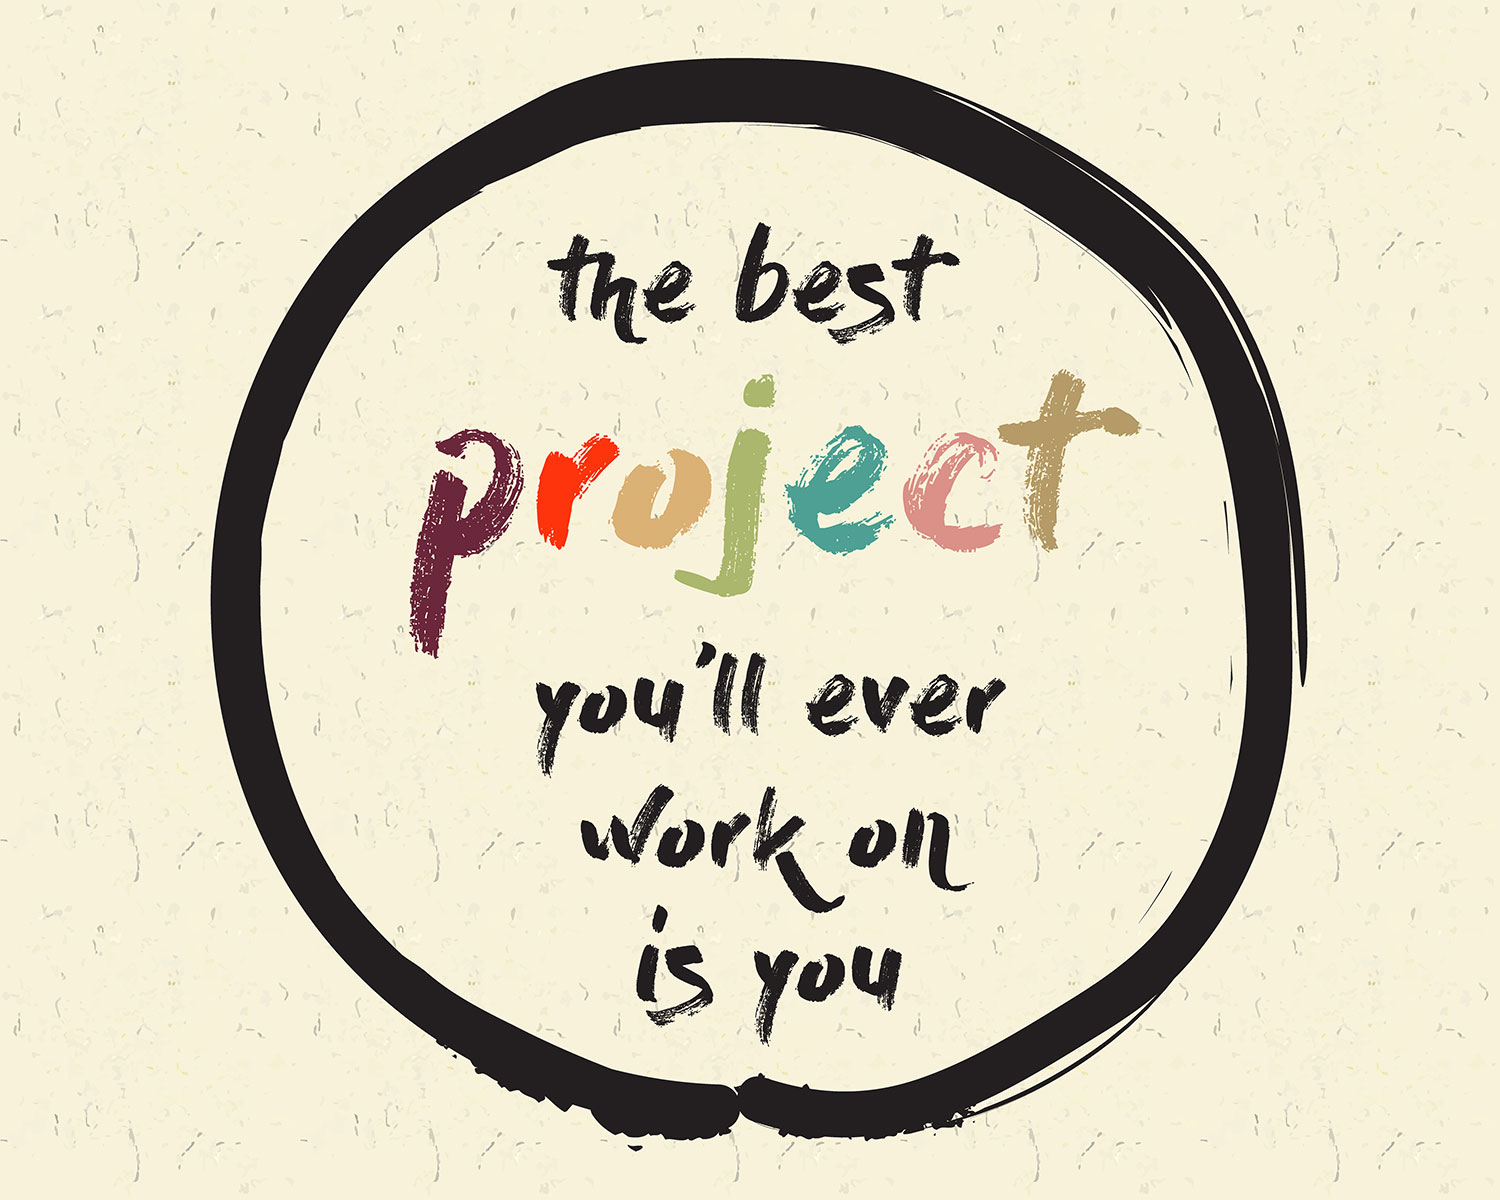 Hand written text in a black circle which says 'the best project you'll ever work on is you'. The word project is in multiple colors, the rest of the words are black.